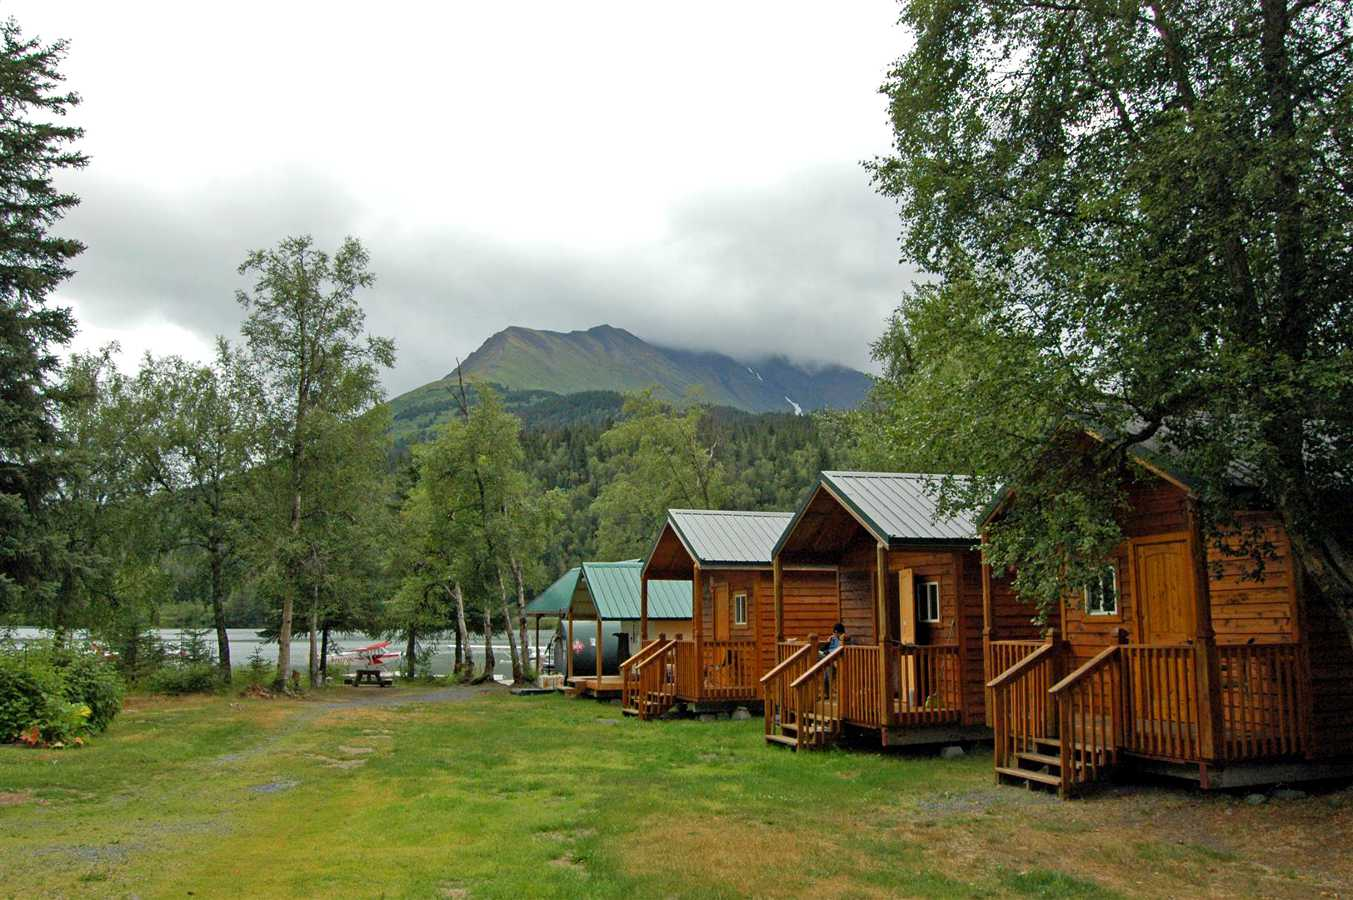 Cabins next to the docks at the Alaskan Float Ratings facility.